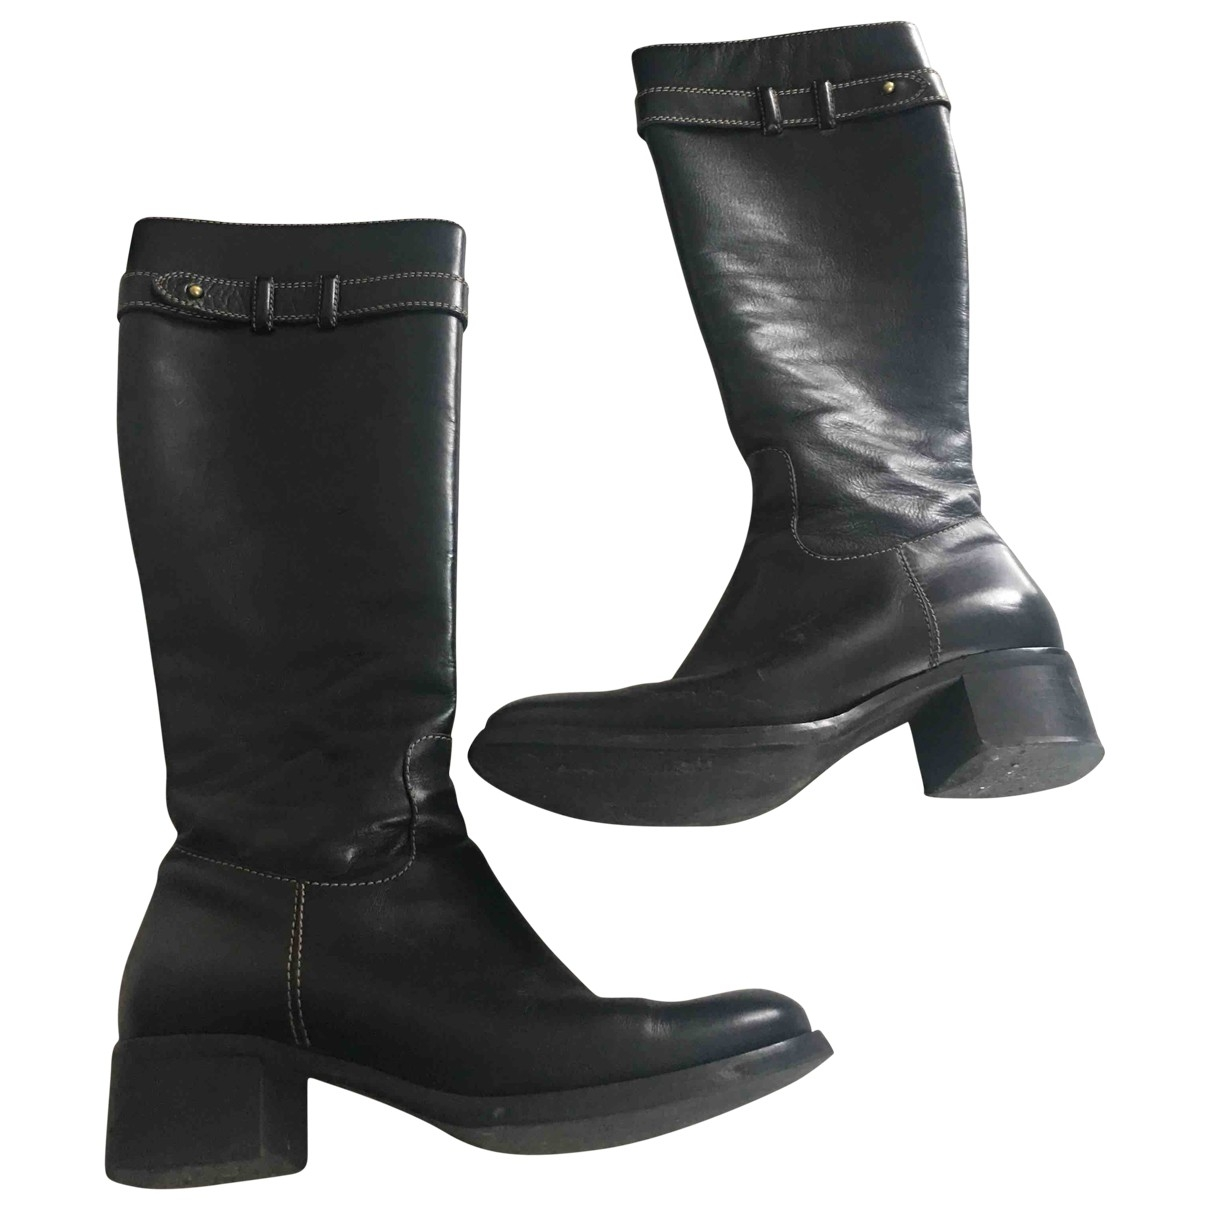 Coccinelle \N Black Leather Boots for Women 36.5 EU